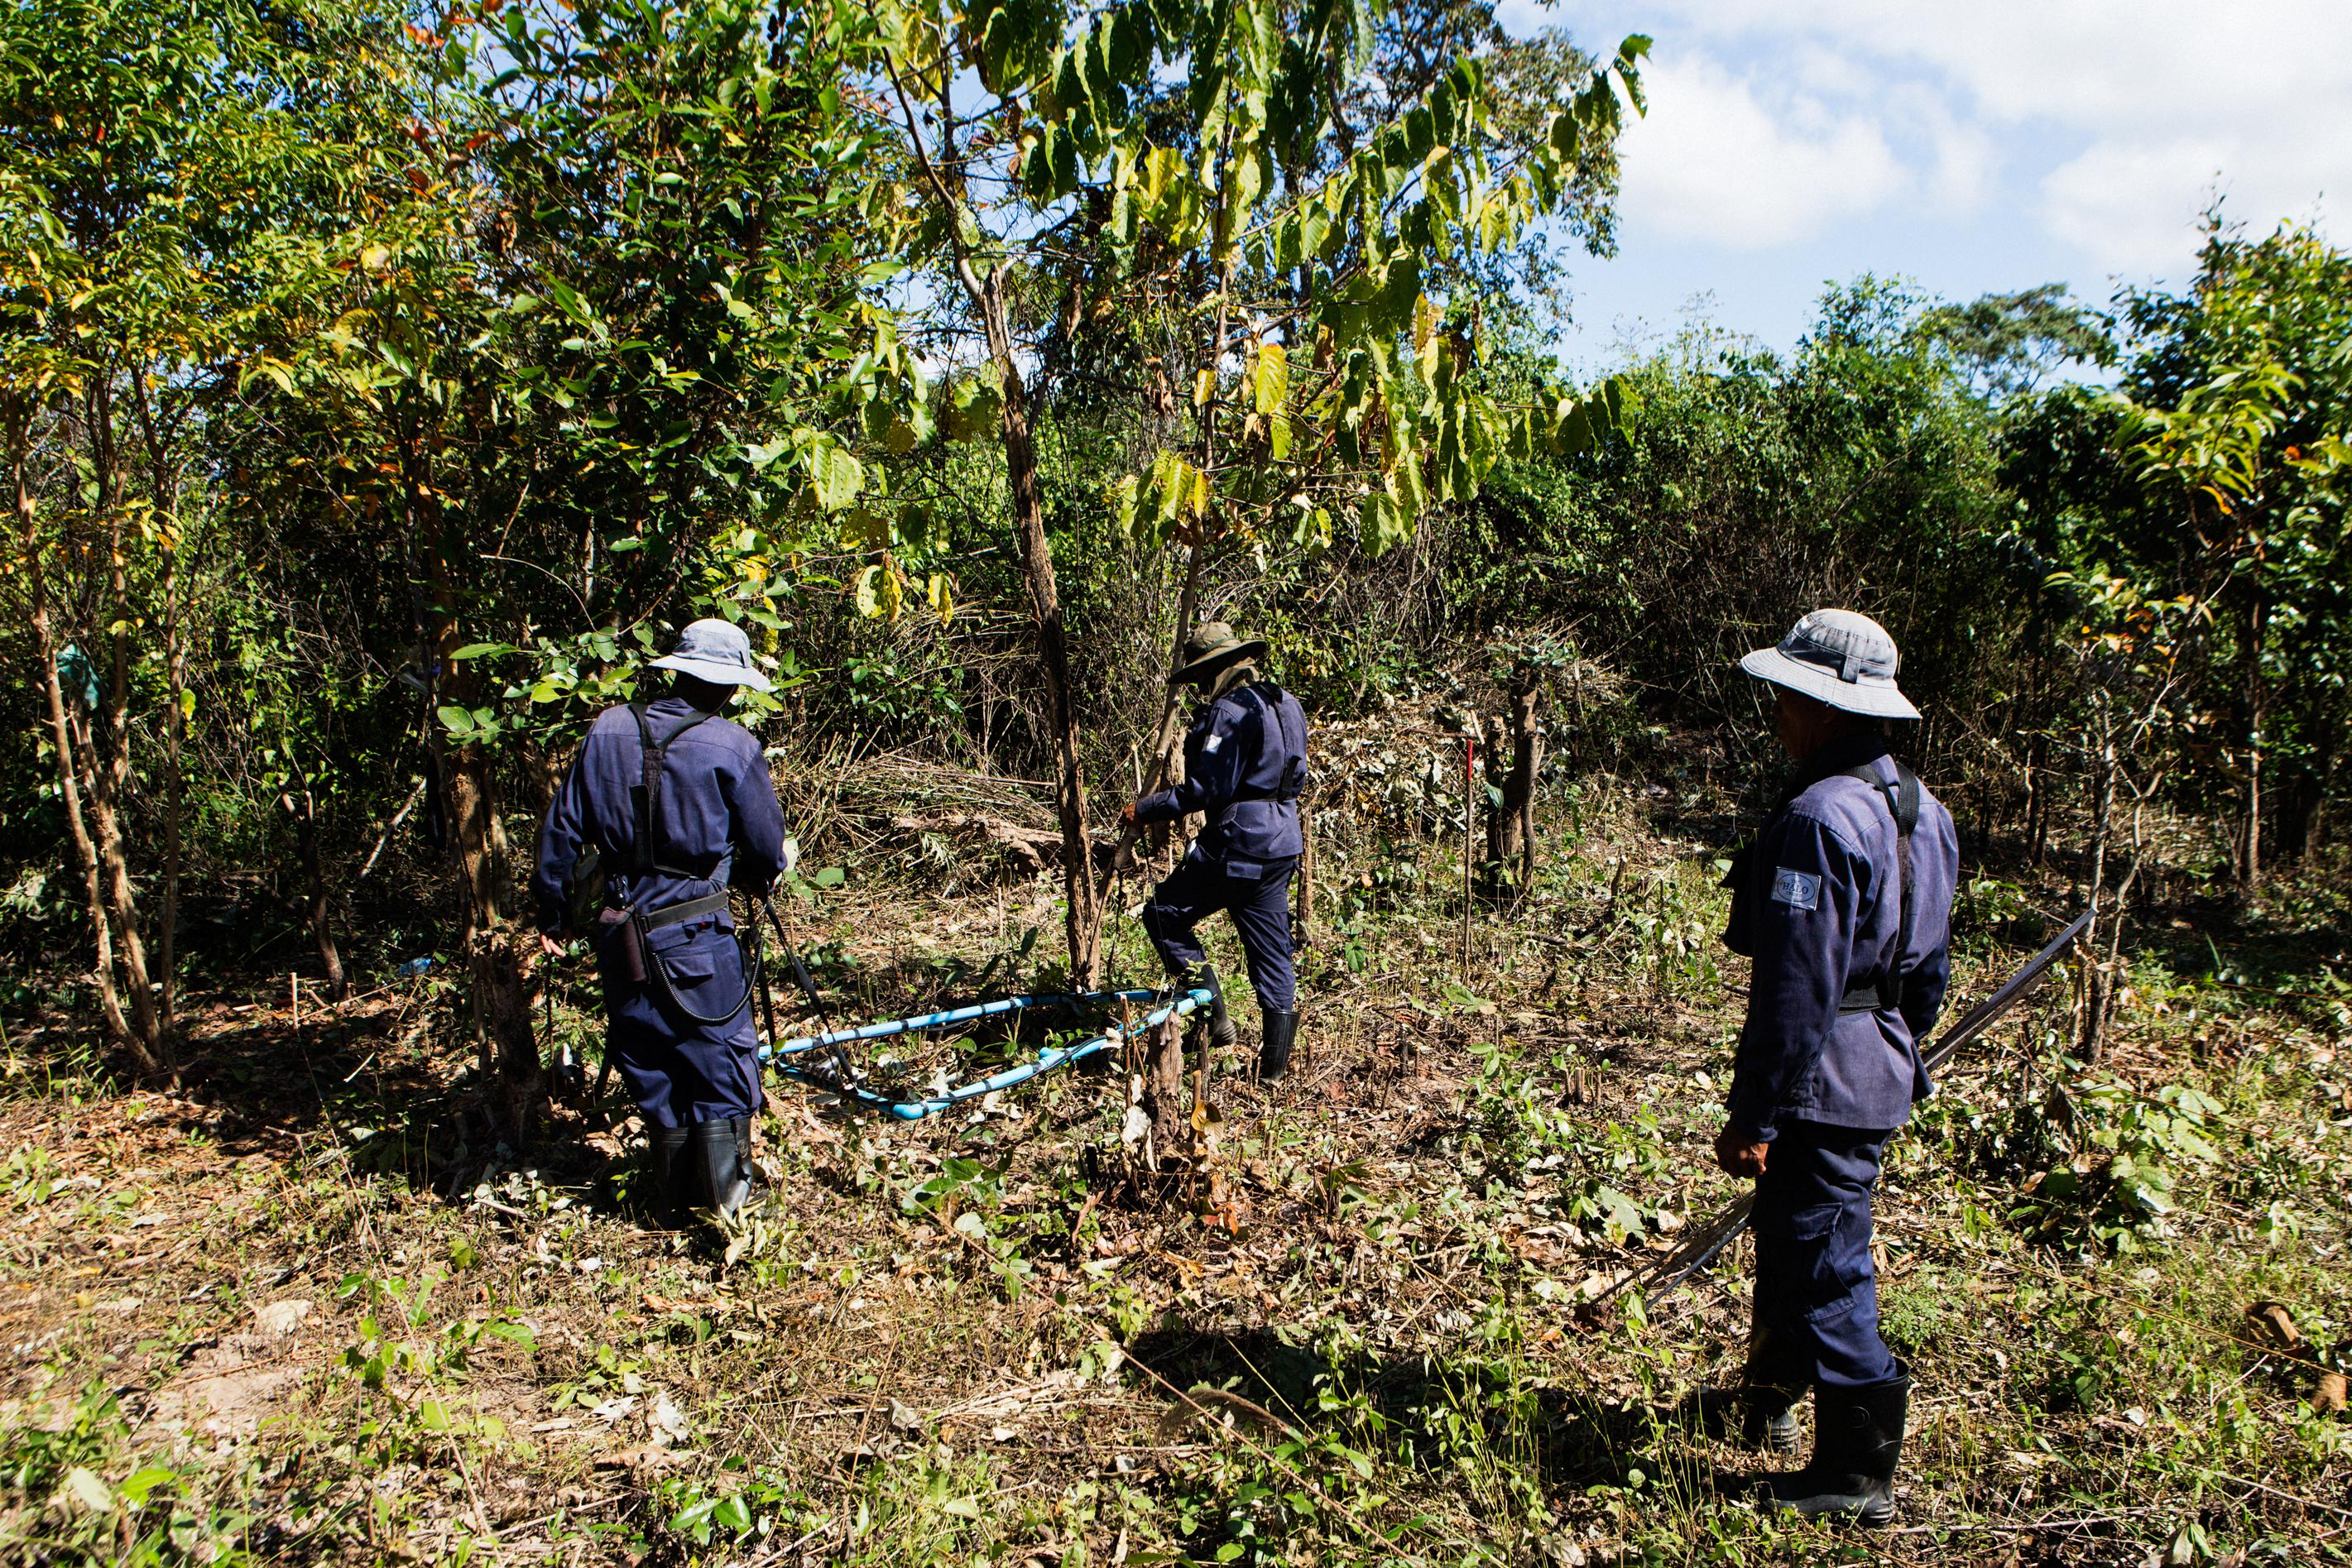 A clearance team searches the area with metal detectors for any UXO that may be buried under the ground.